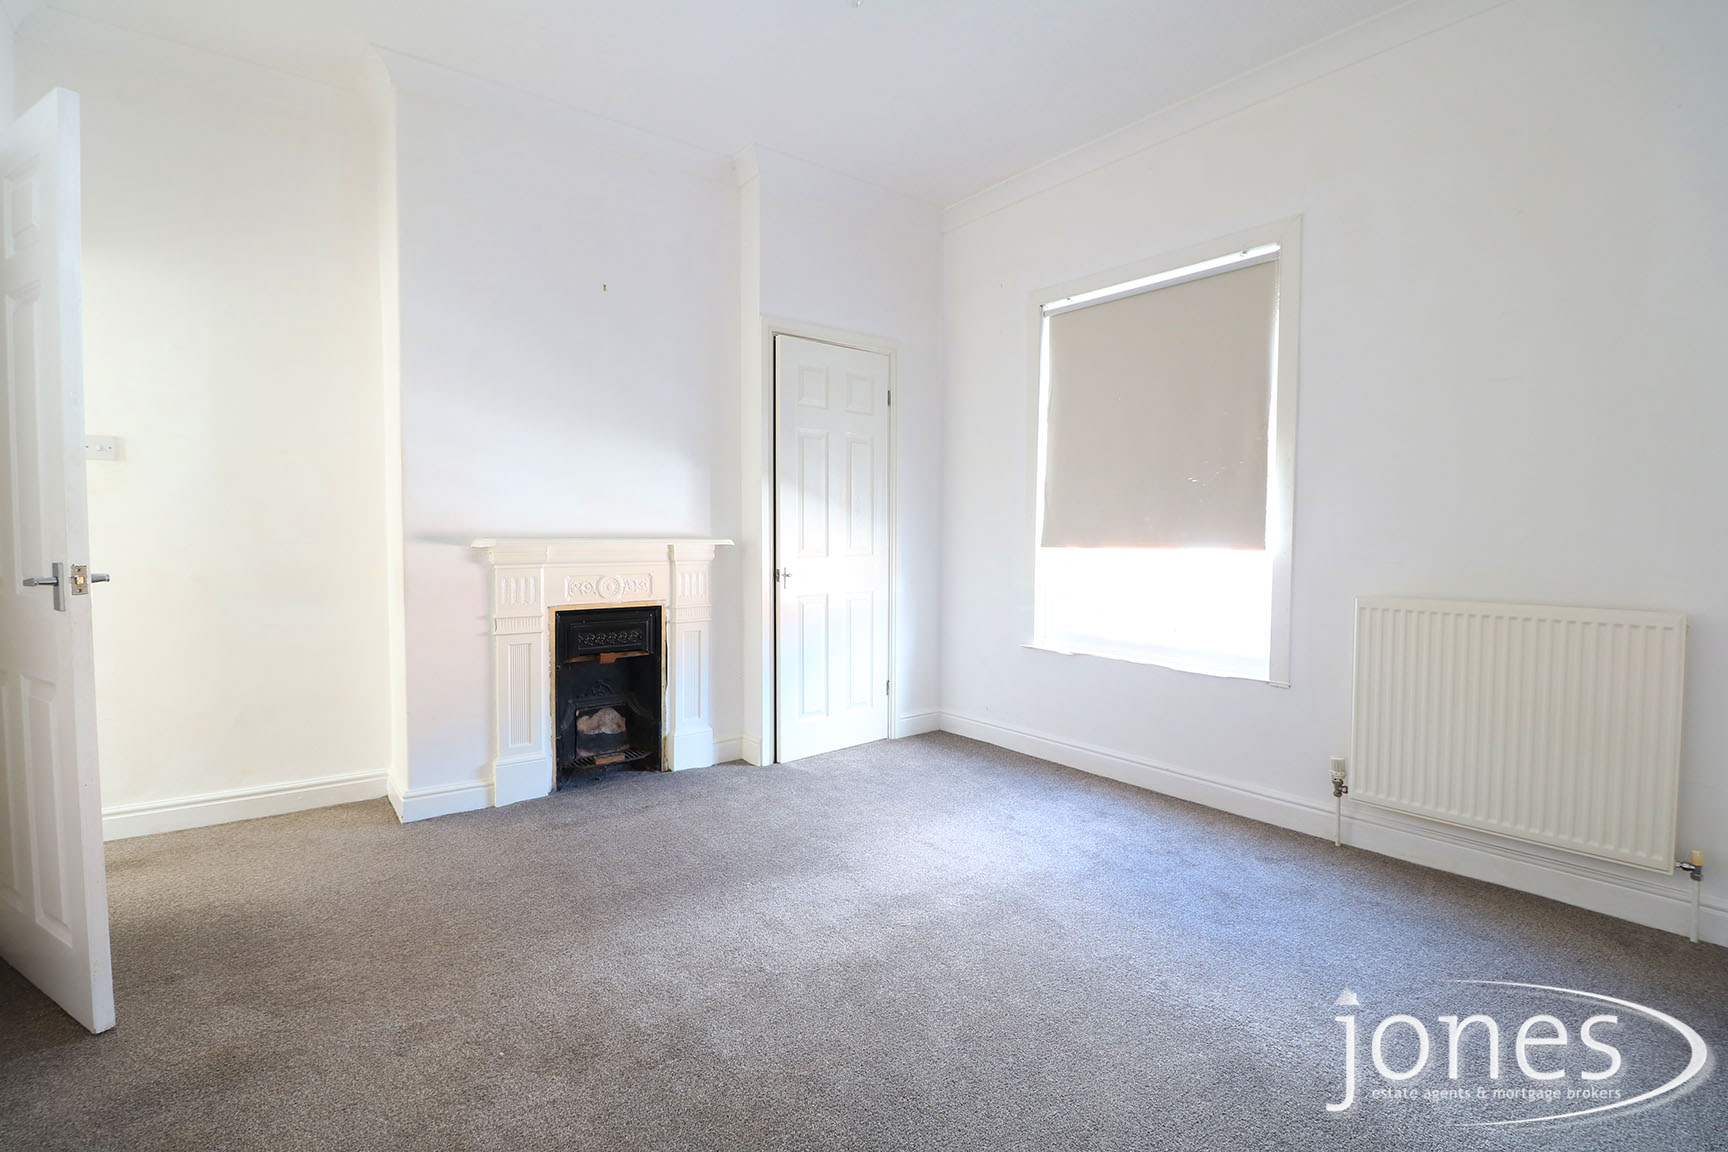 Home for Sale Let - Photo 06 Rosebery Street, Darlington, DL3 6EU